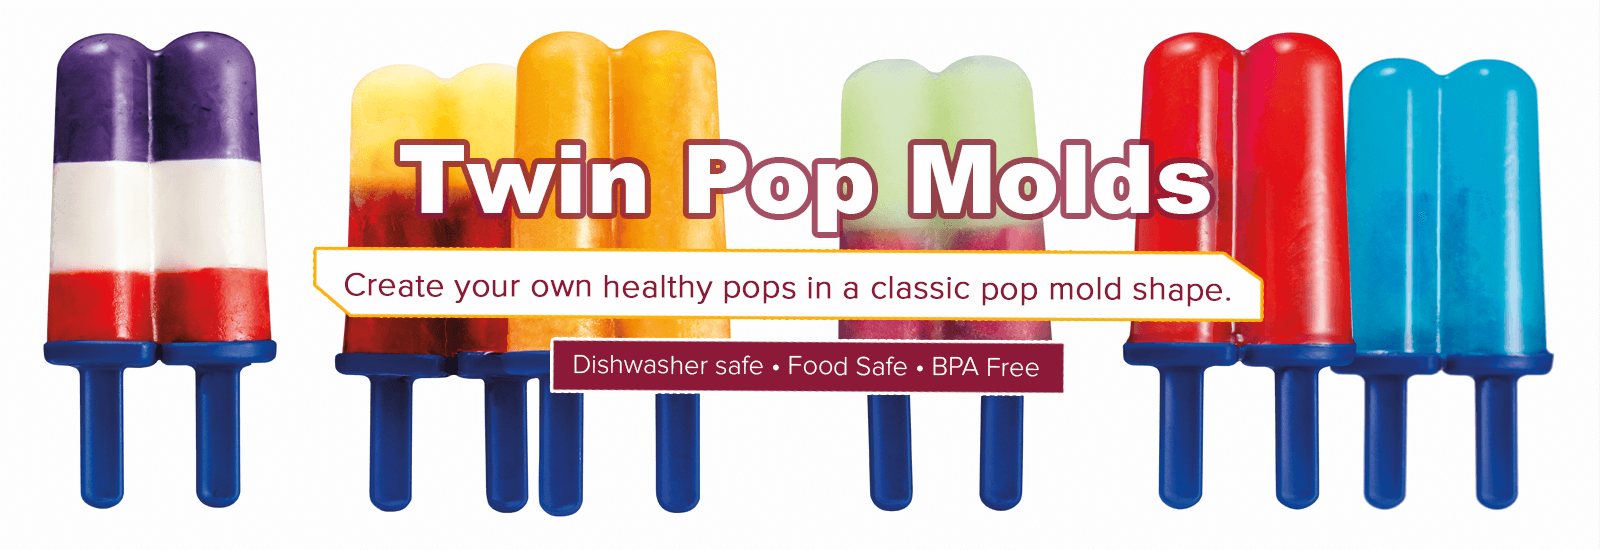 Tovolo Twin pops mold banner